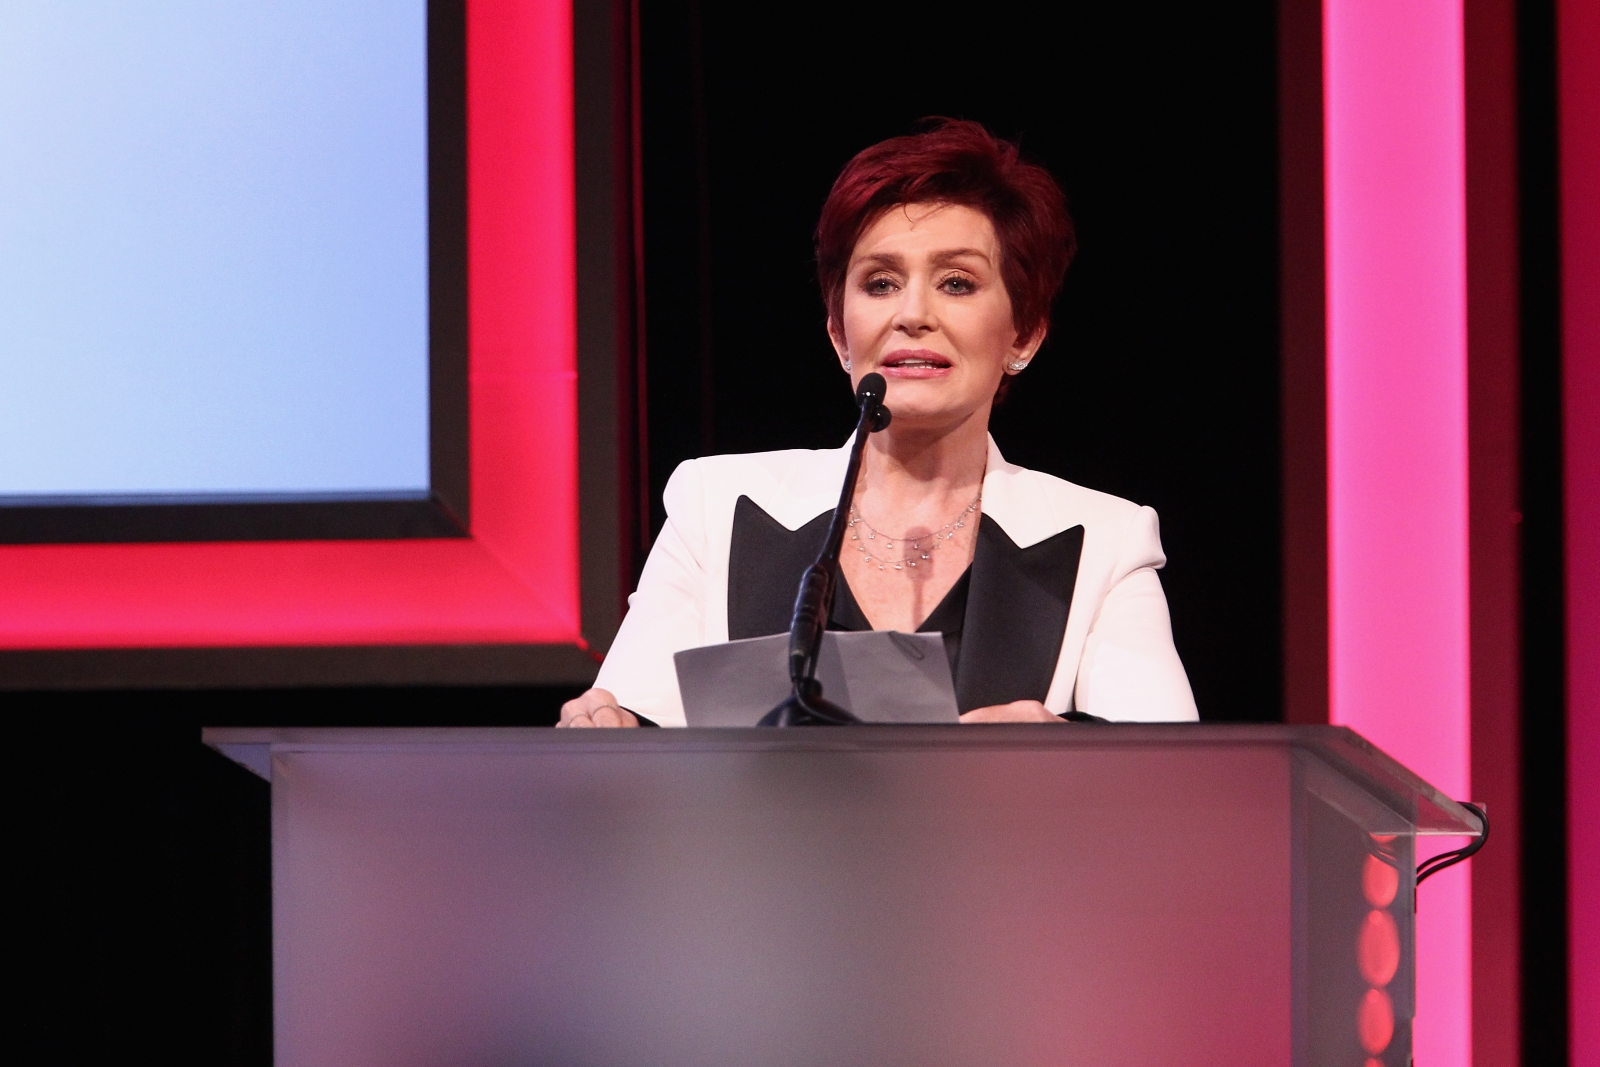 Sharon Osbourne speaking at awards ceremony